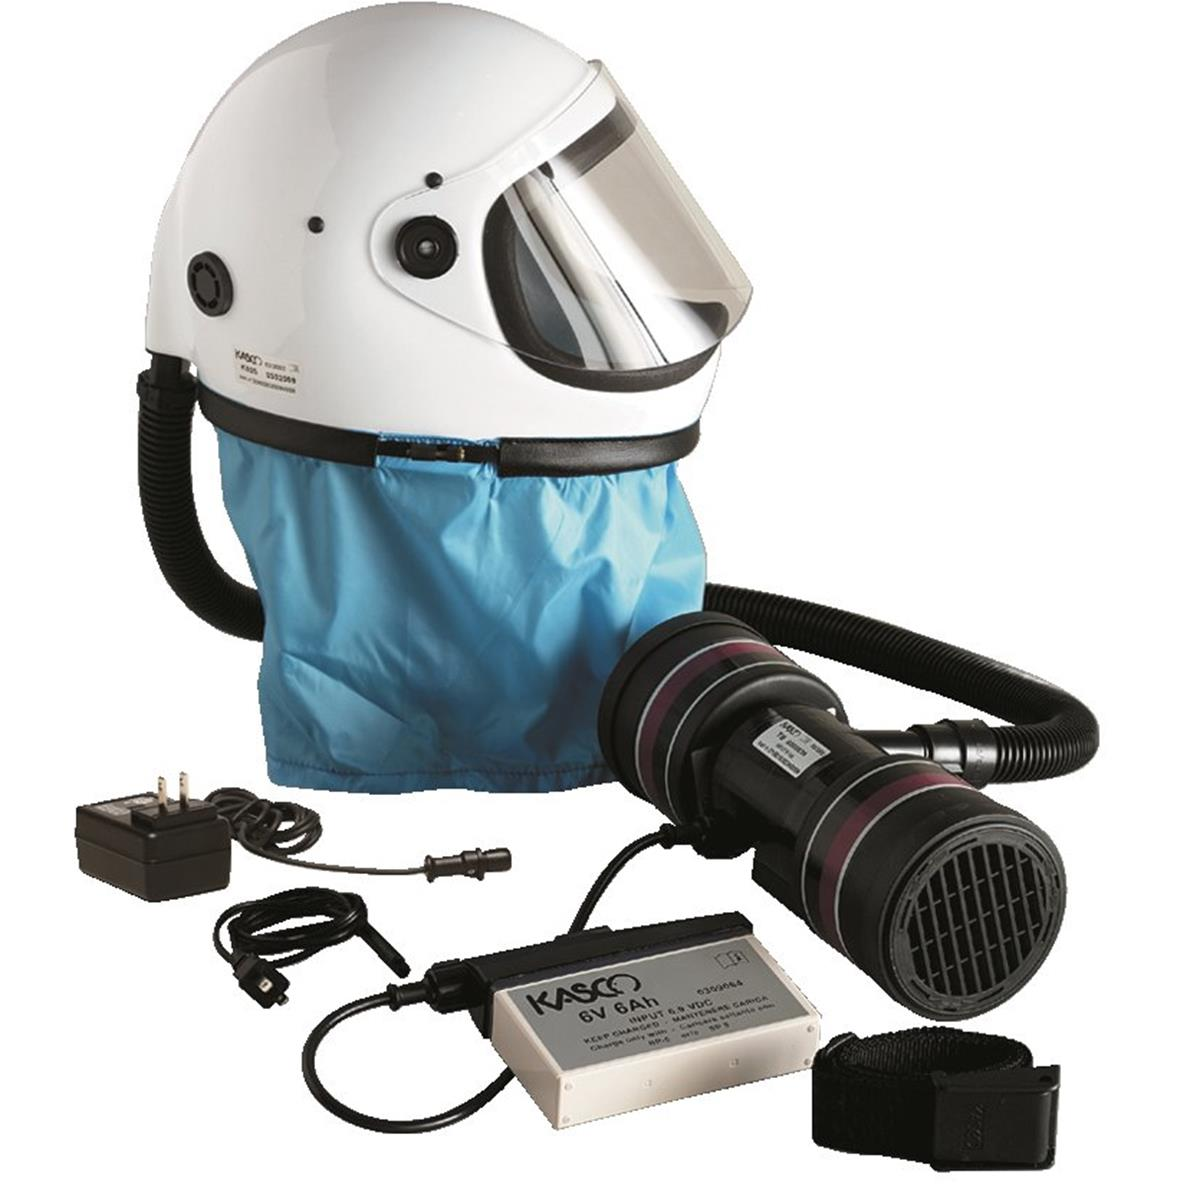 K80S-T8 Battery-Powered Pesticide Helmet